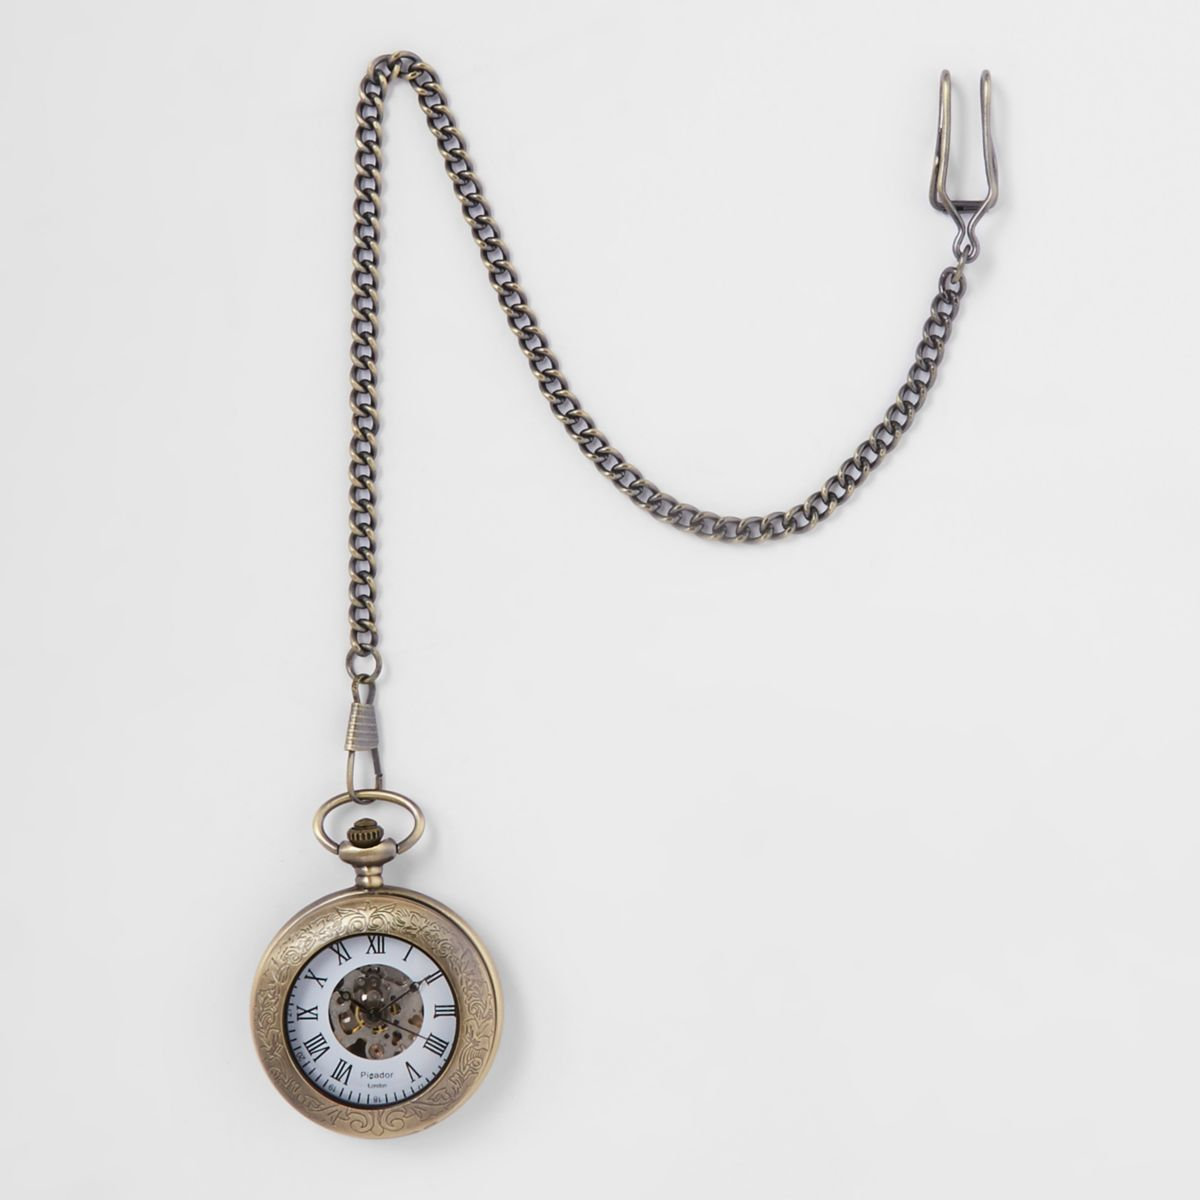 Gold tone open front pocket watch